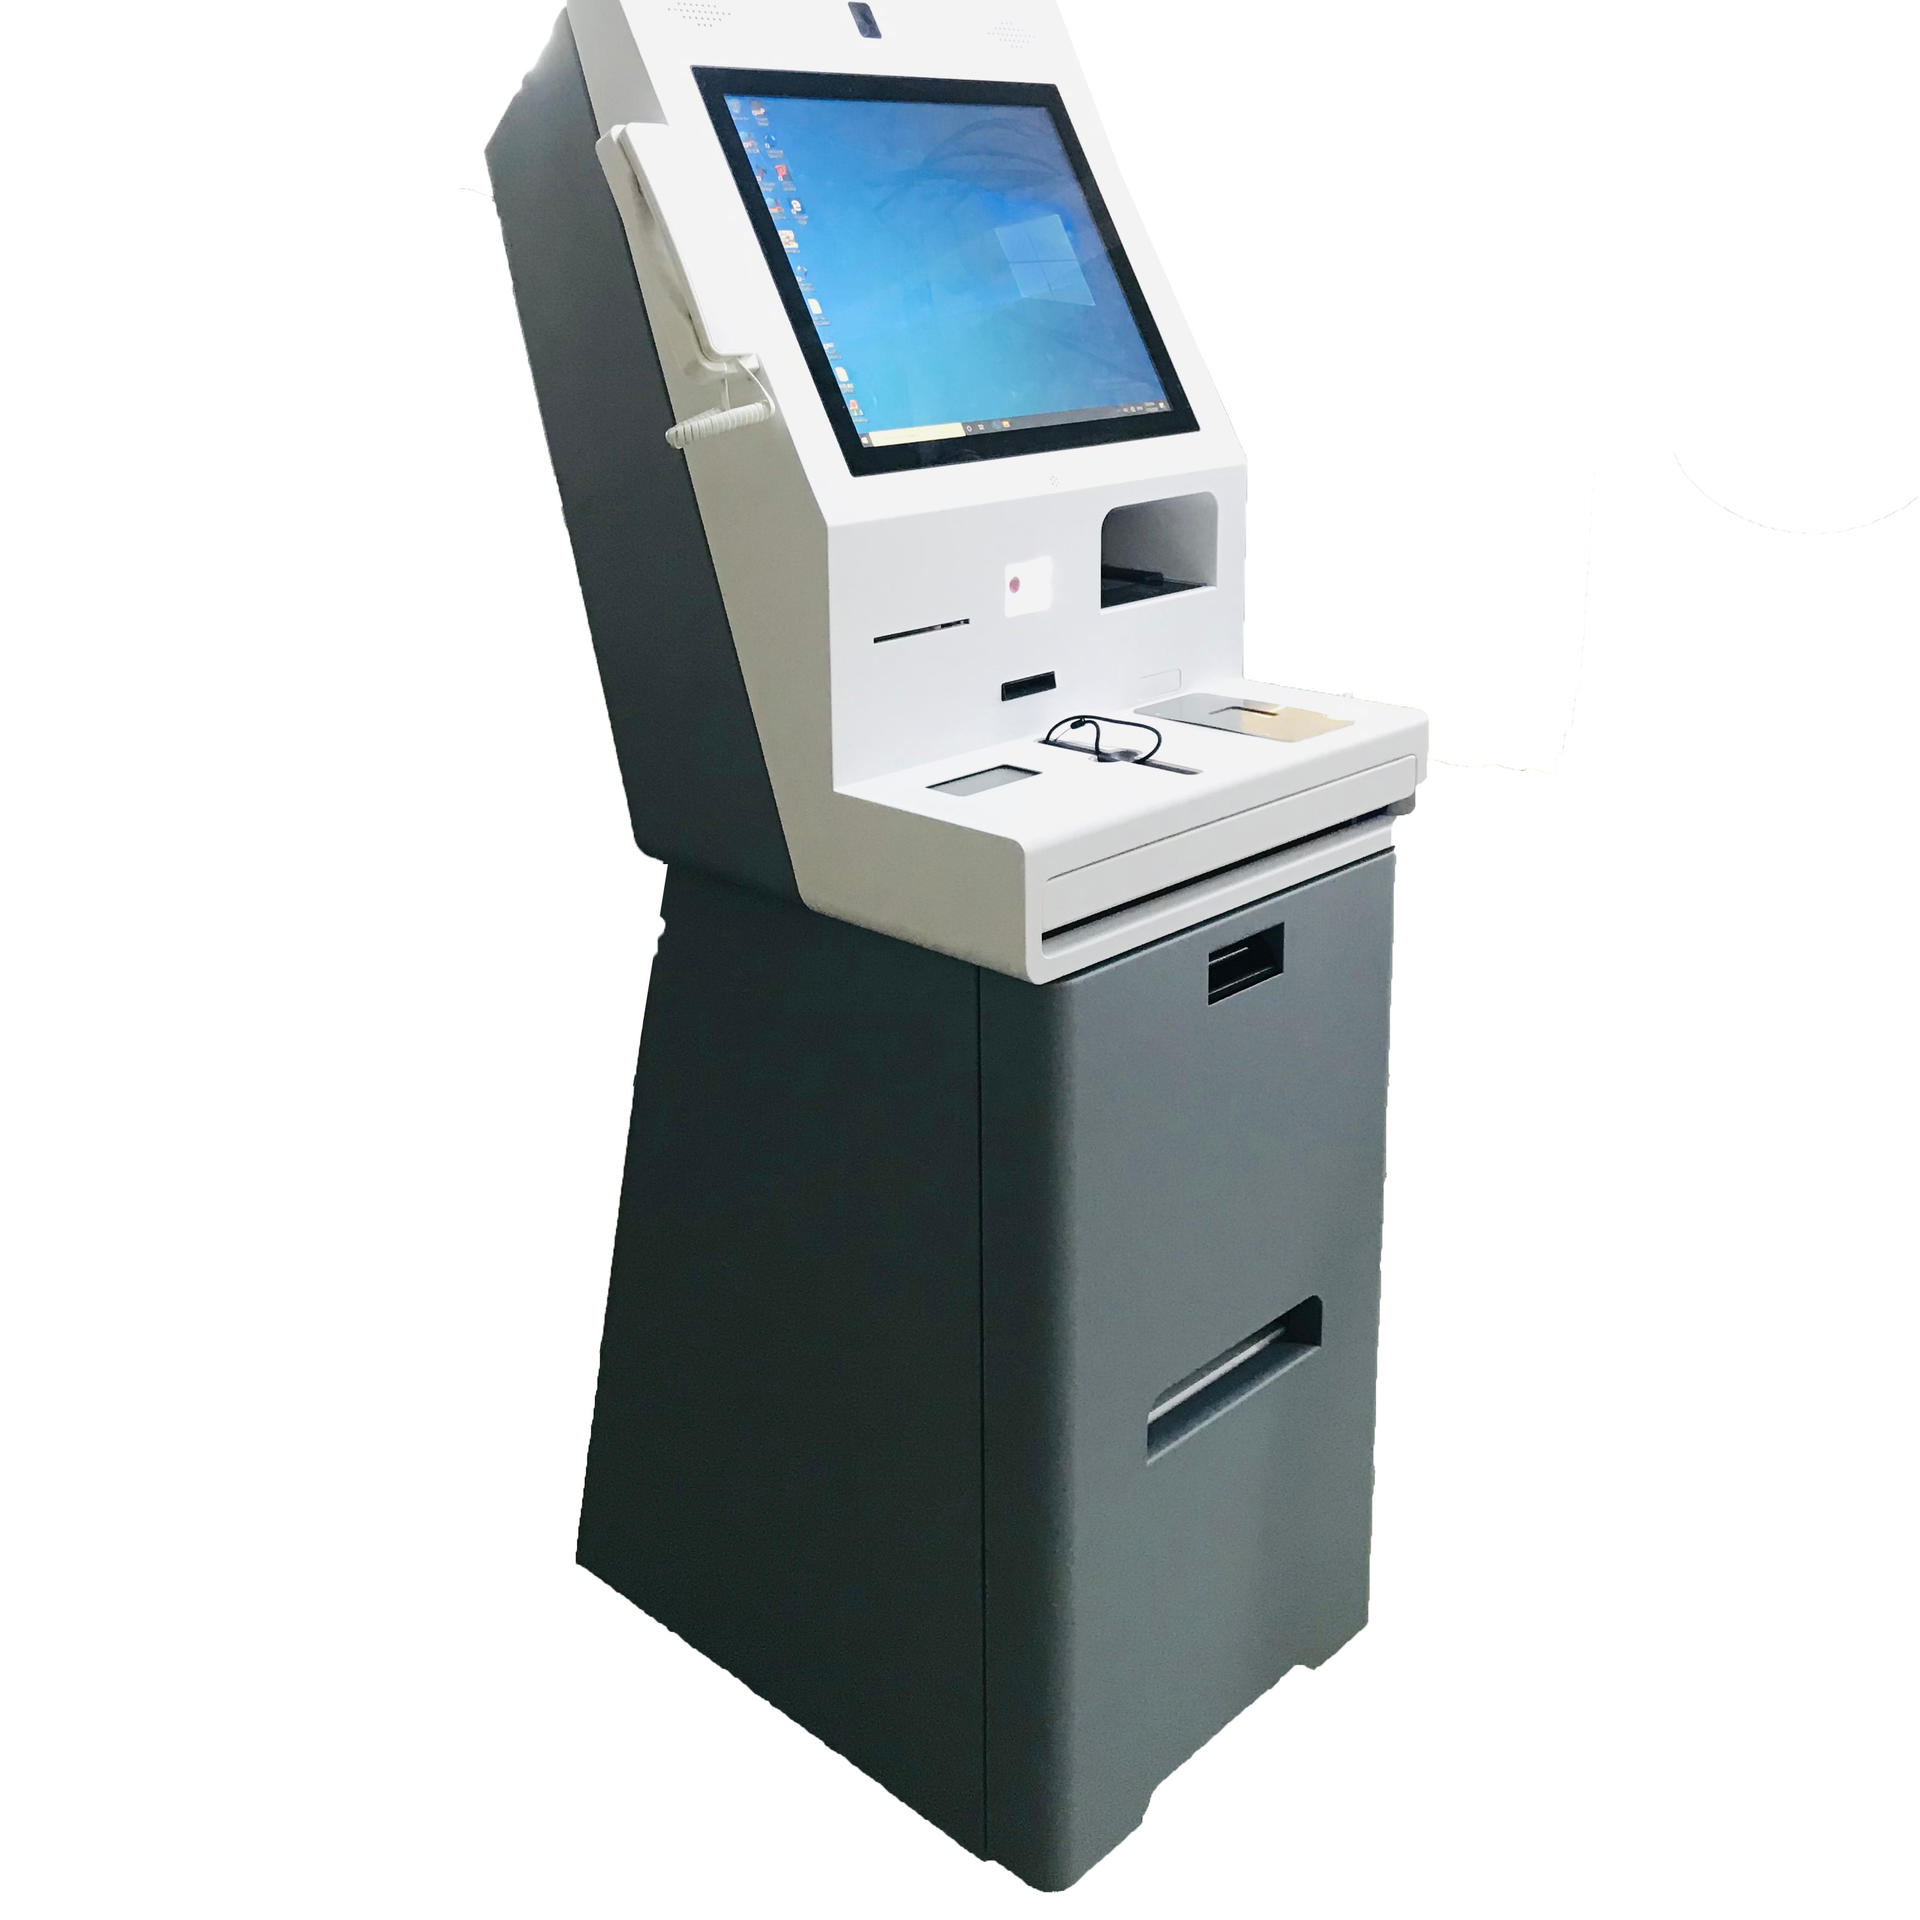 Check in Kiosk OEM Vertical Dual Screen Payment Kiosk For Hotel